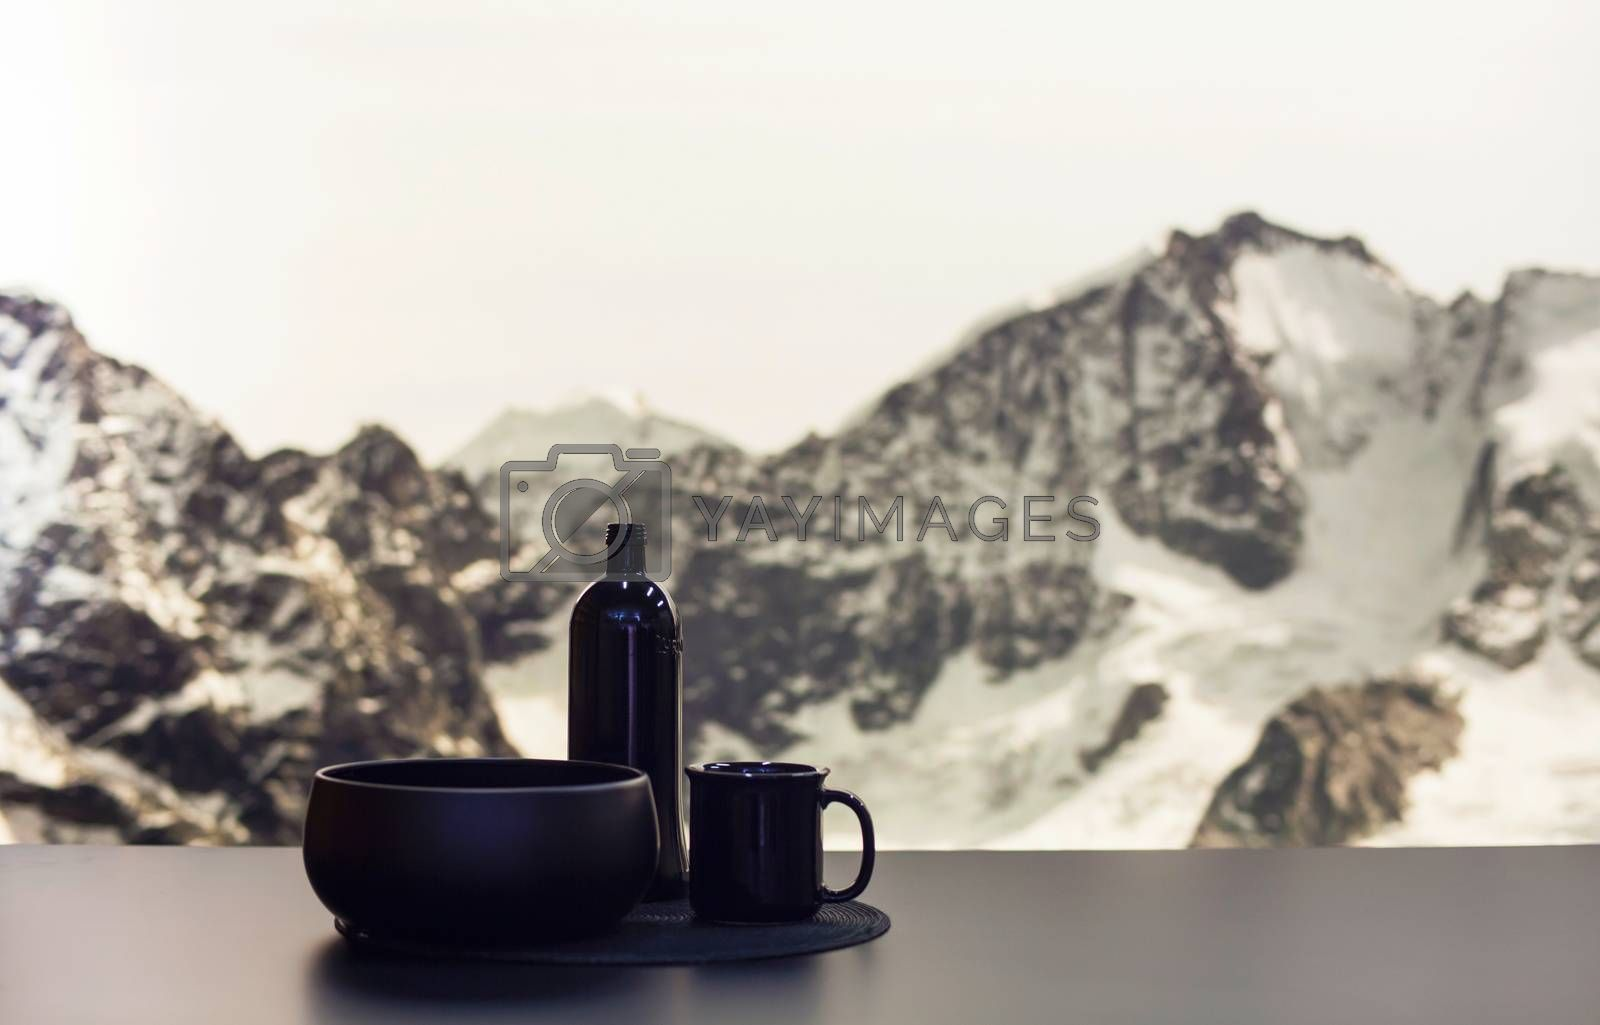 MILAN, ITALY - APRIL 16: Black pottery displayed at Ventura - Lambrate space location of important events during Milan Design week on April 16, 2015